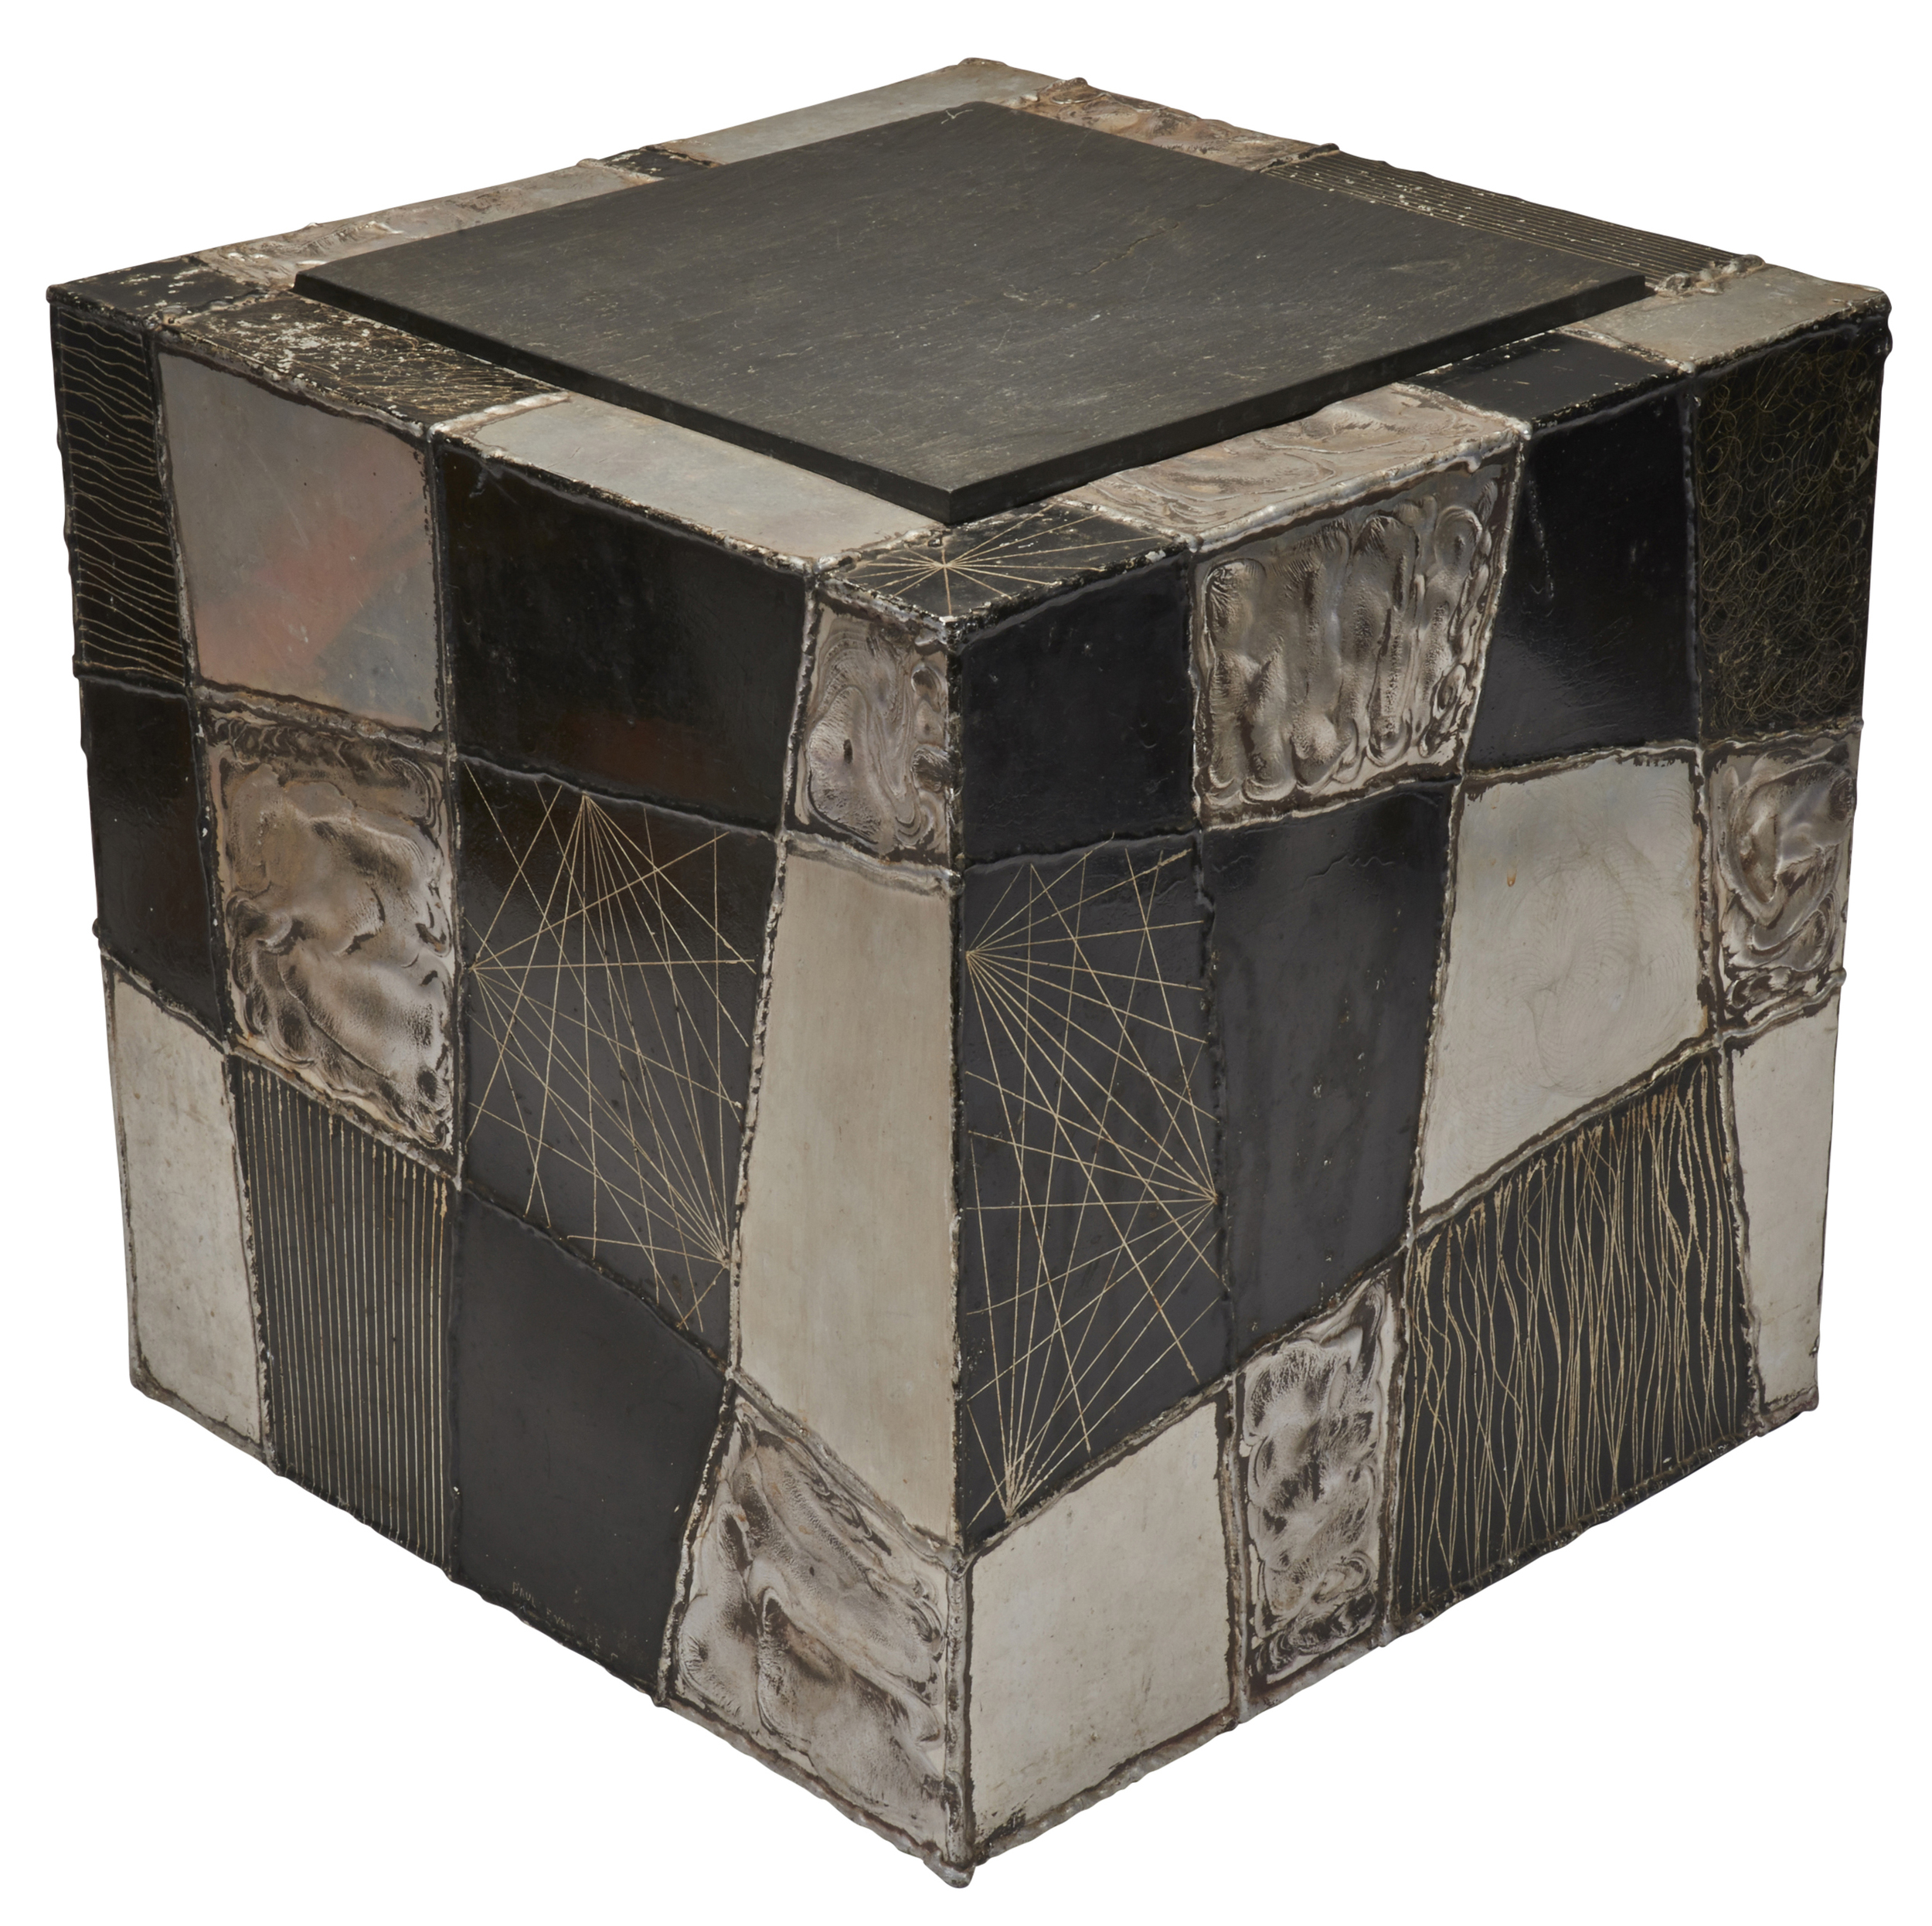 07147c30b6 Paul Evans cube side table | Treadway Gallery